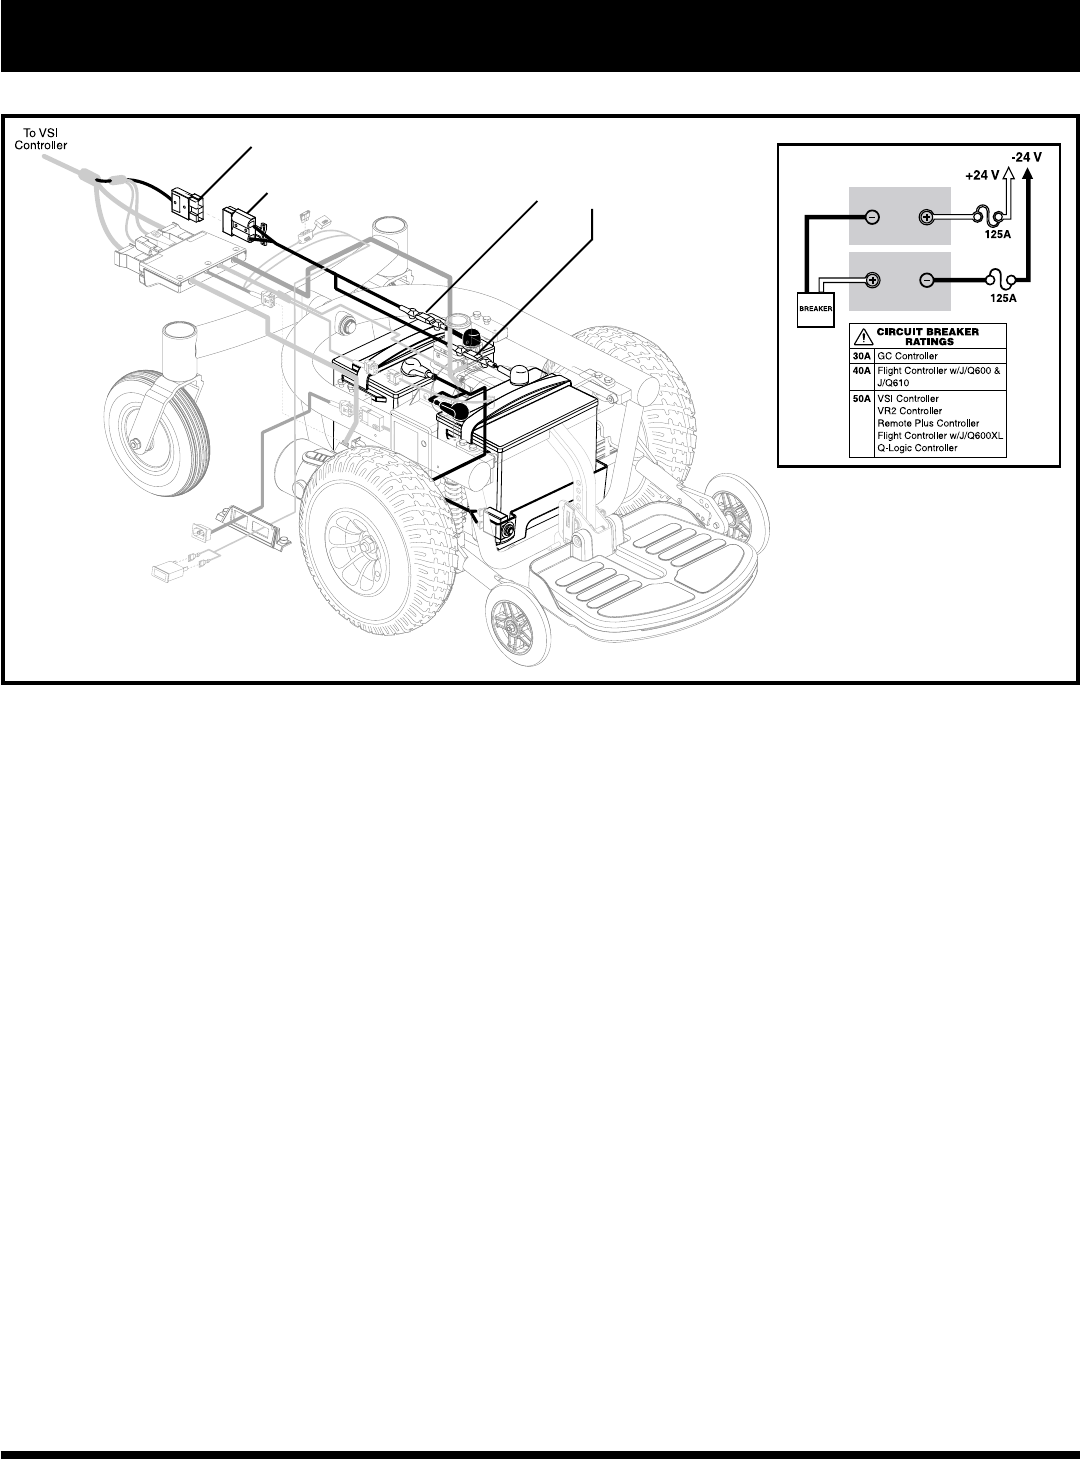 55cd0a64 9f56 4b5b bb6f 66cc883674a7 bg2c page 44 of pride mobility mobility aid 1103 ultra user guide Jazzy Select Power Chair Wiring Diagram at love-stories.co